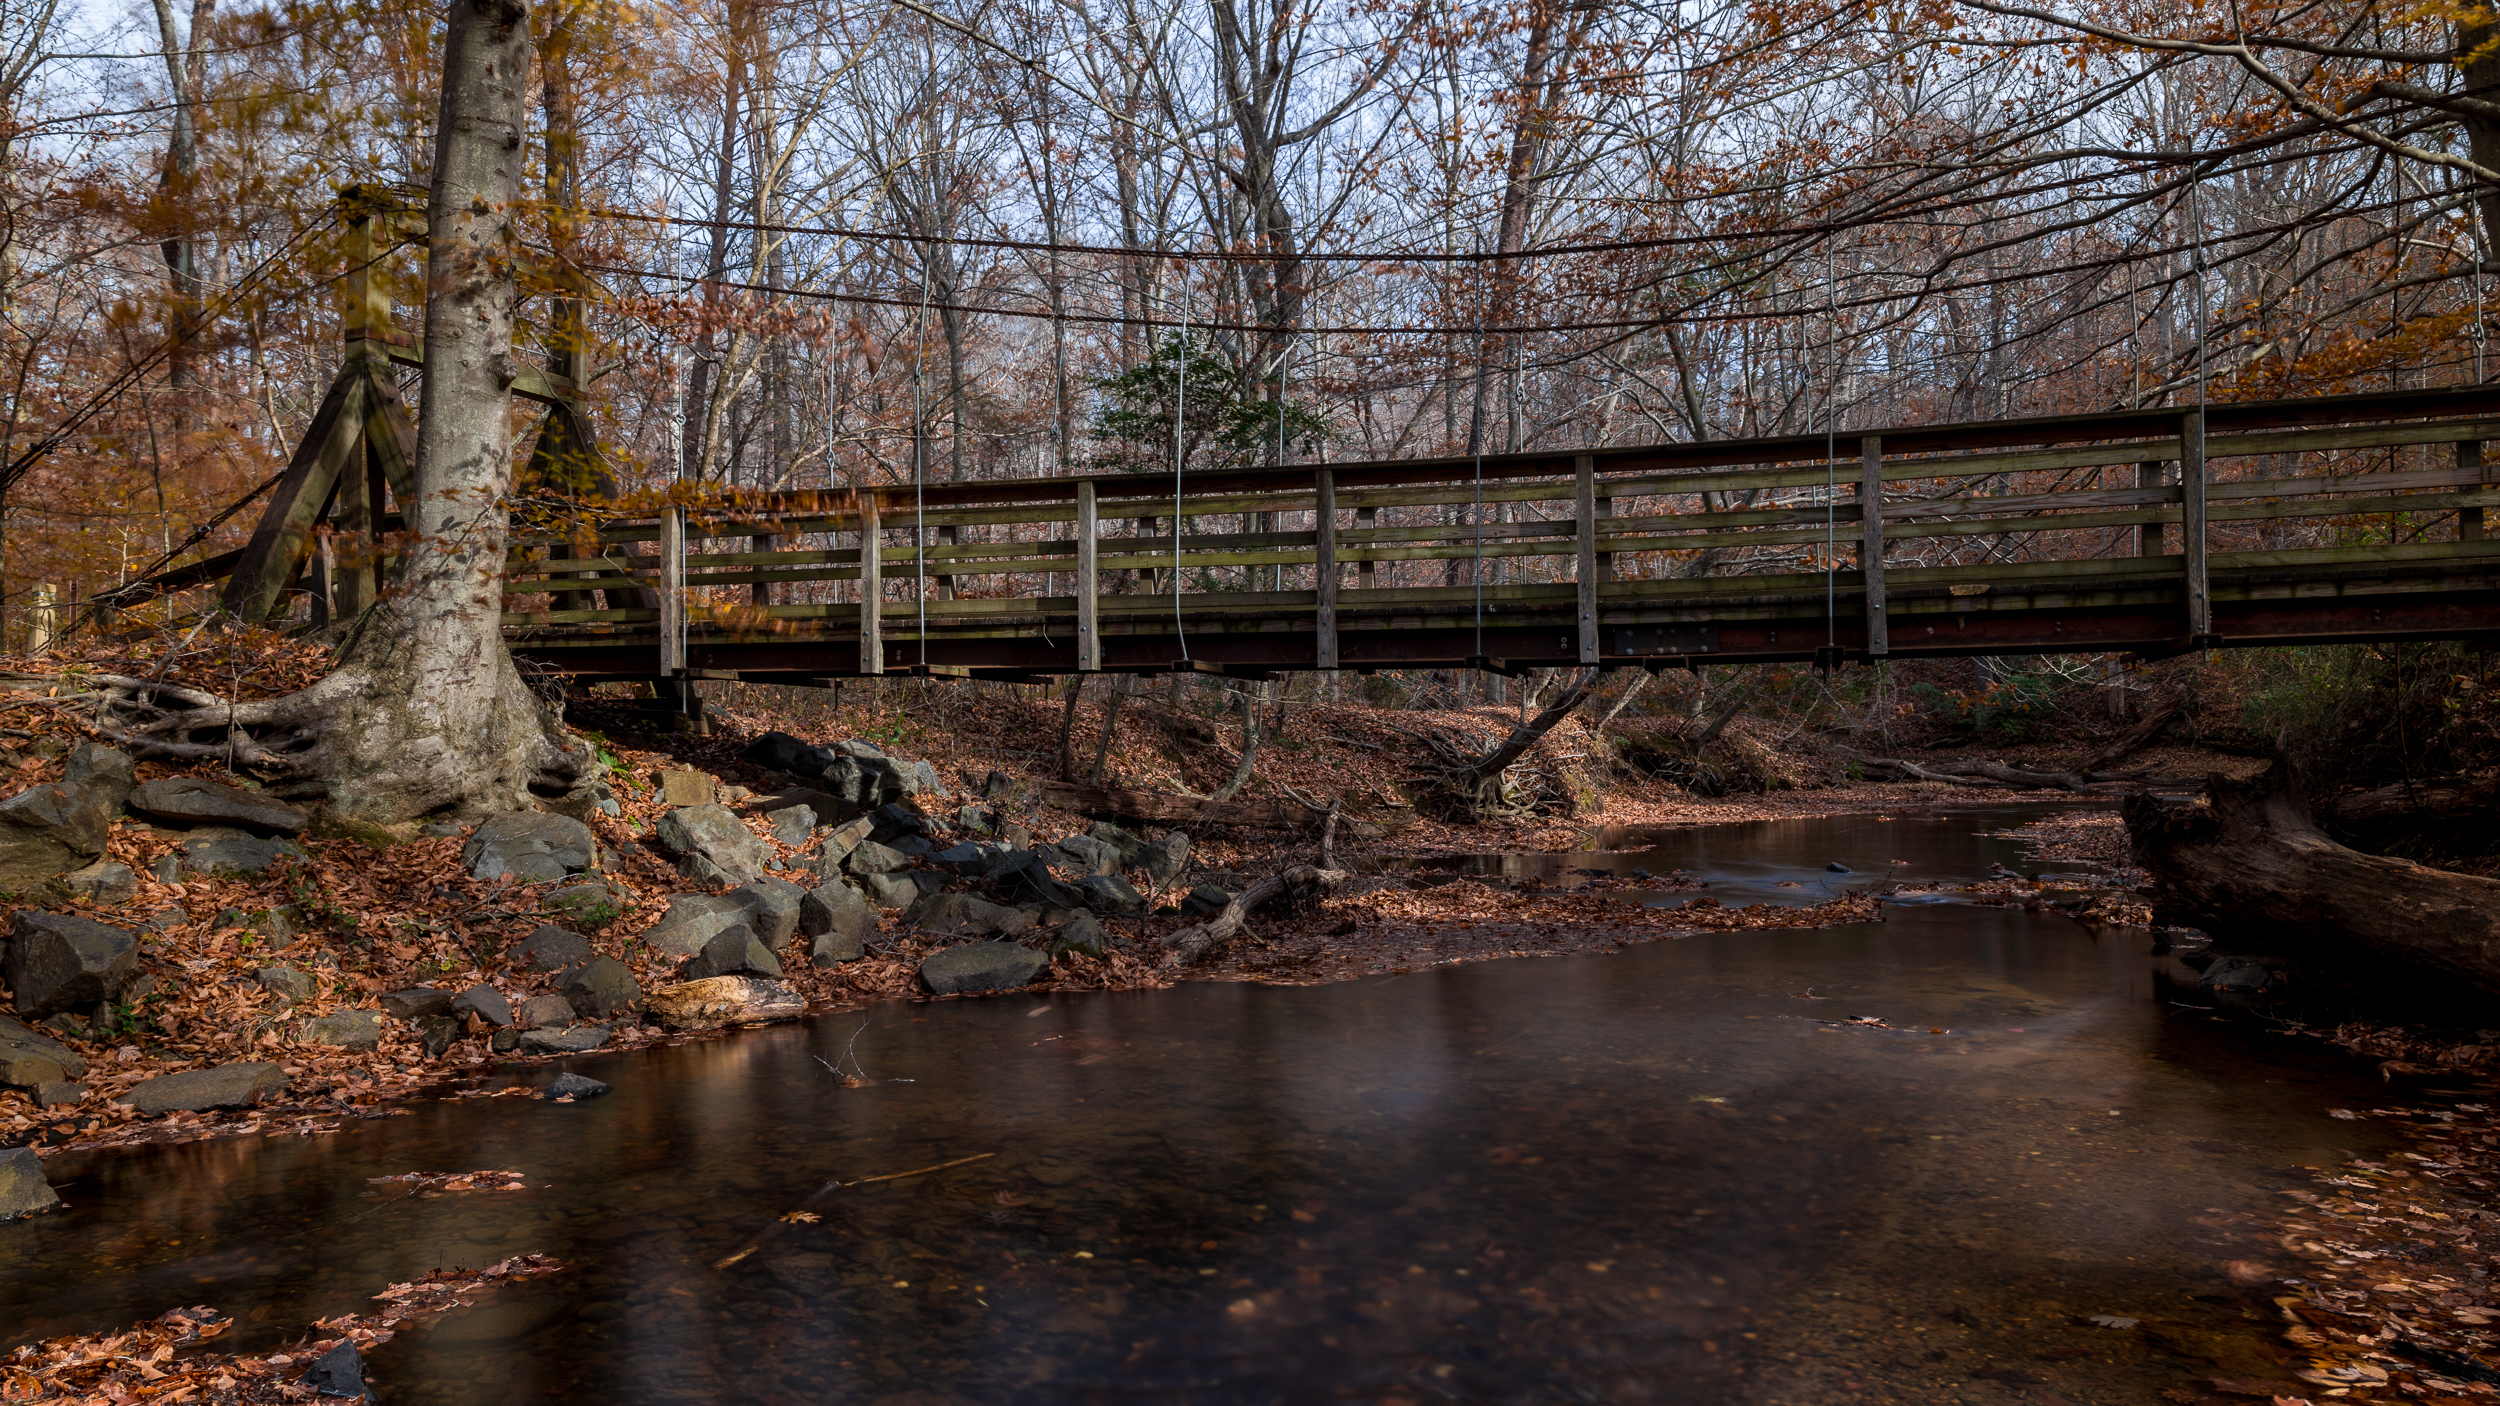 I stood in the water (with good boots) to get a long exposure of the creek running under the bridge